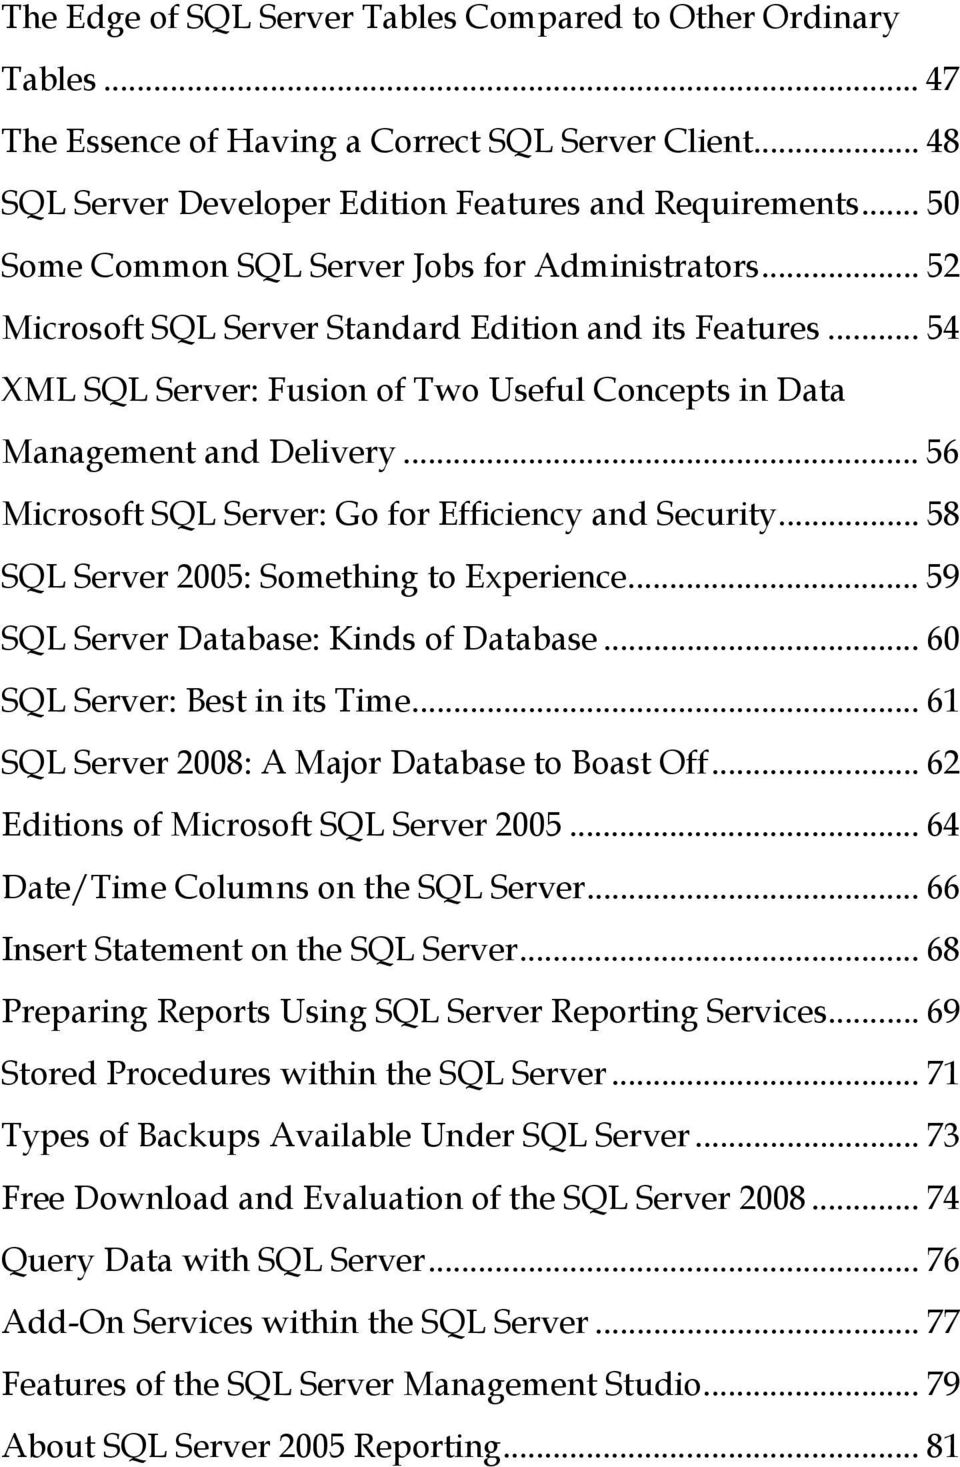 .. 56 Microsoft SQL Server: Go for Efficiency and Security... 58 SQL Server 2005: Something to Experience... 59 SQL Server Database: Kinds of Database... 60 SQL Server: Best in its Time.